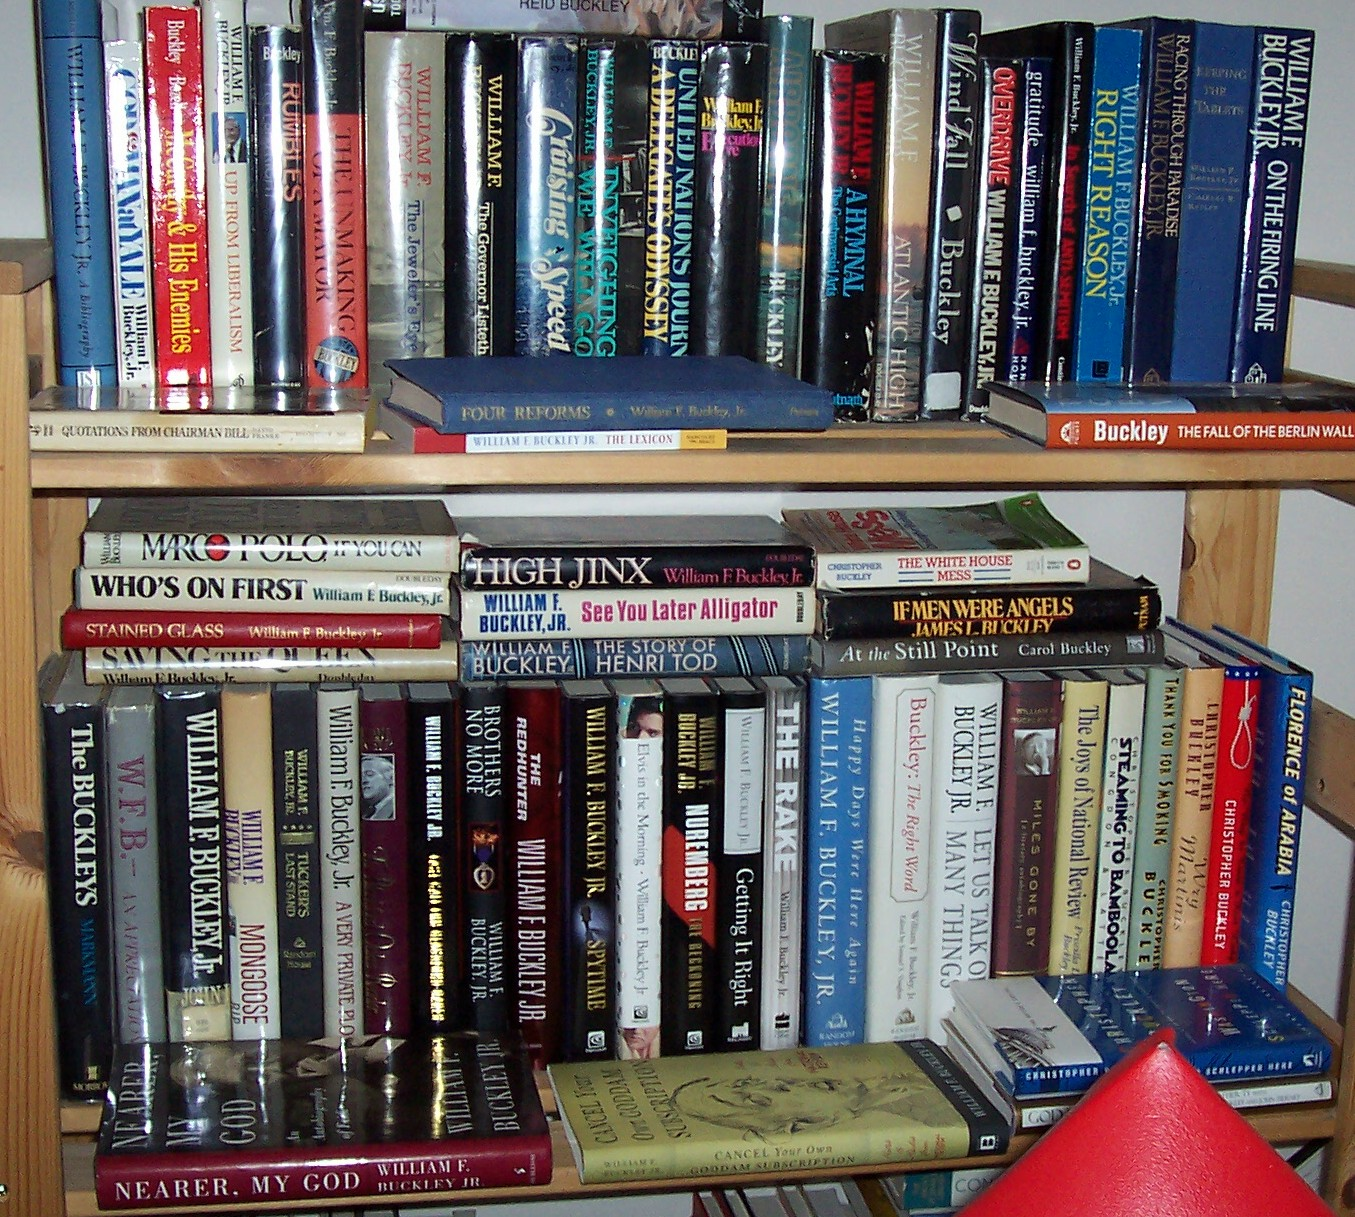 Buckley%20books.jpg